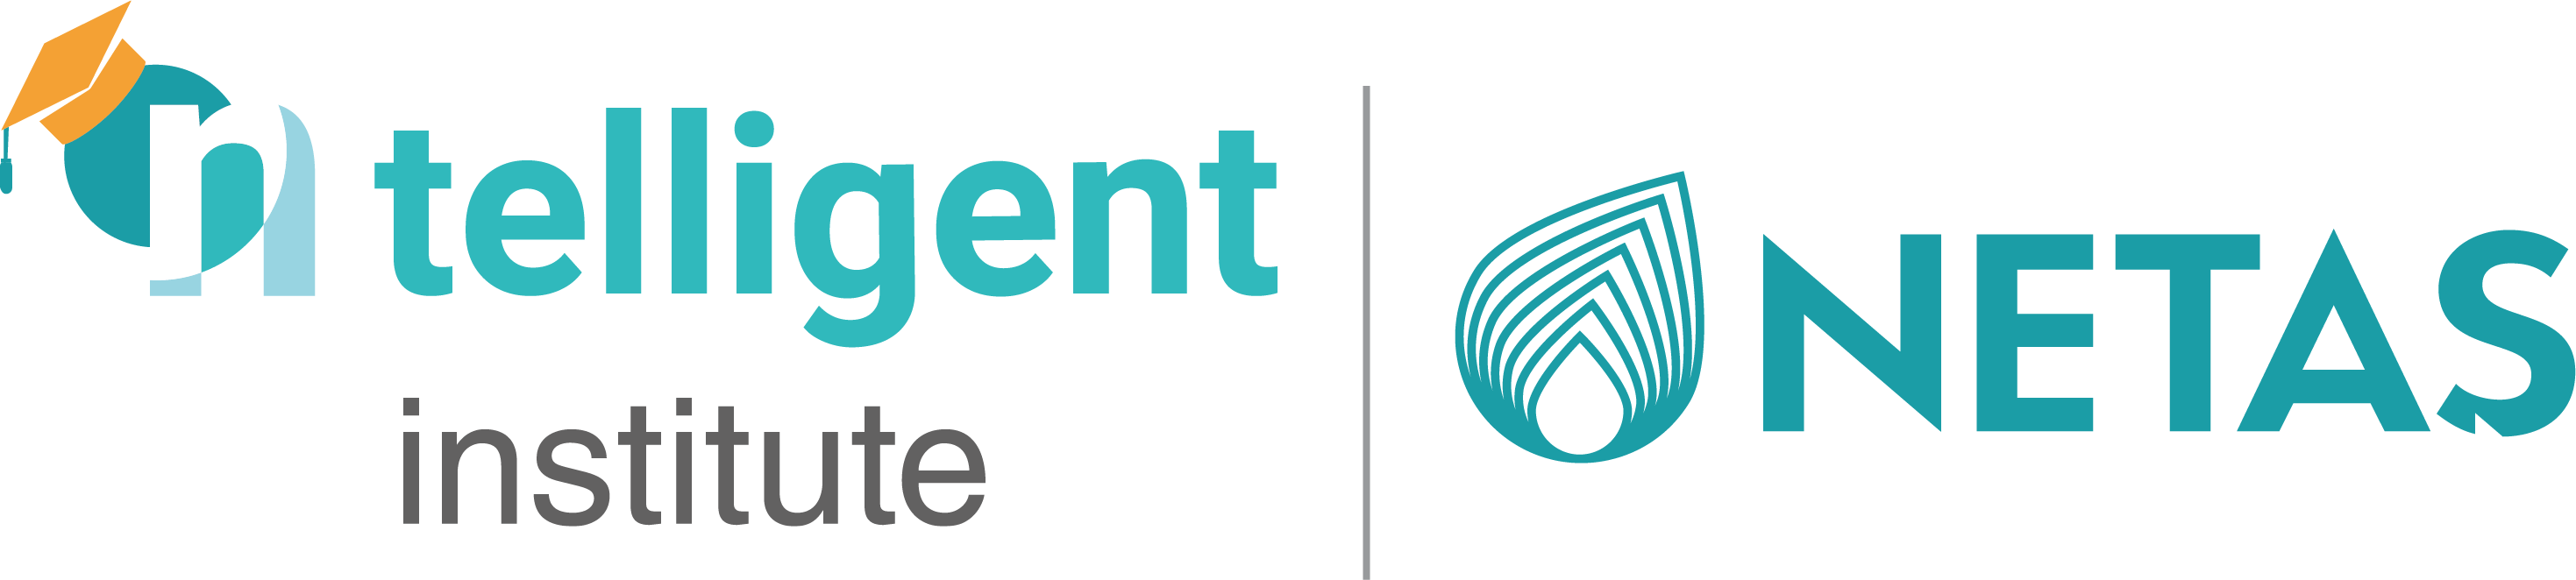 ntelligent institute logo